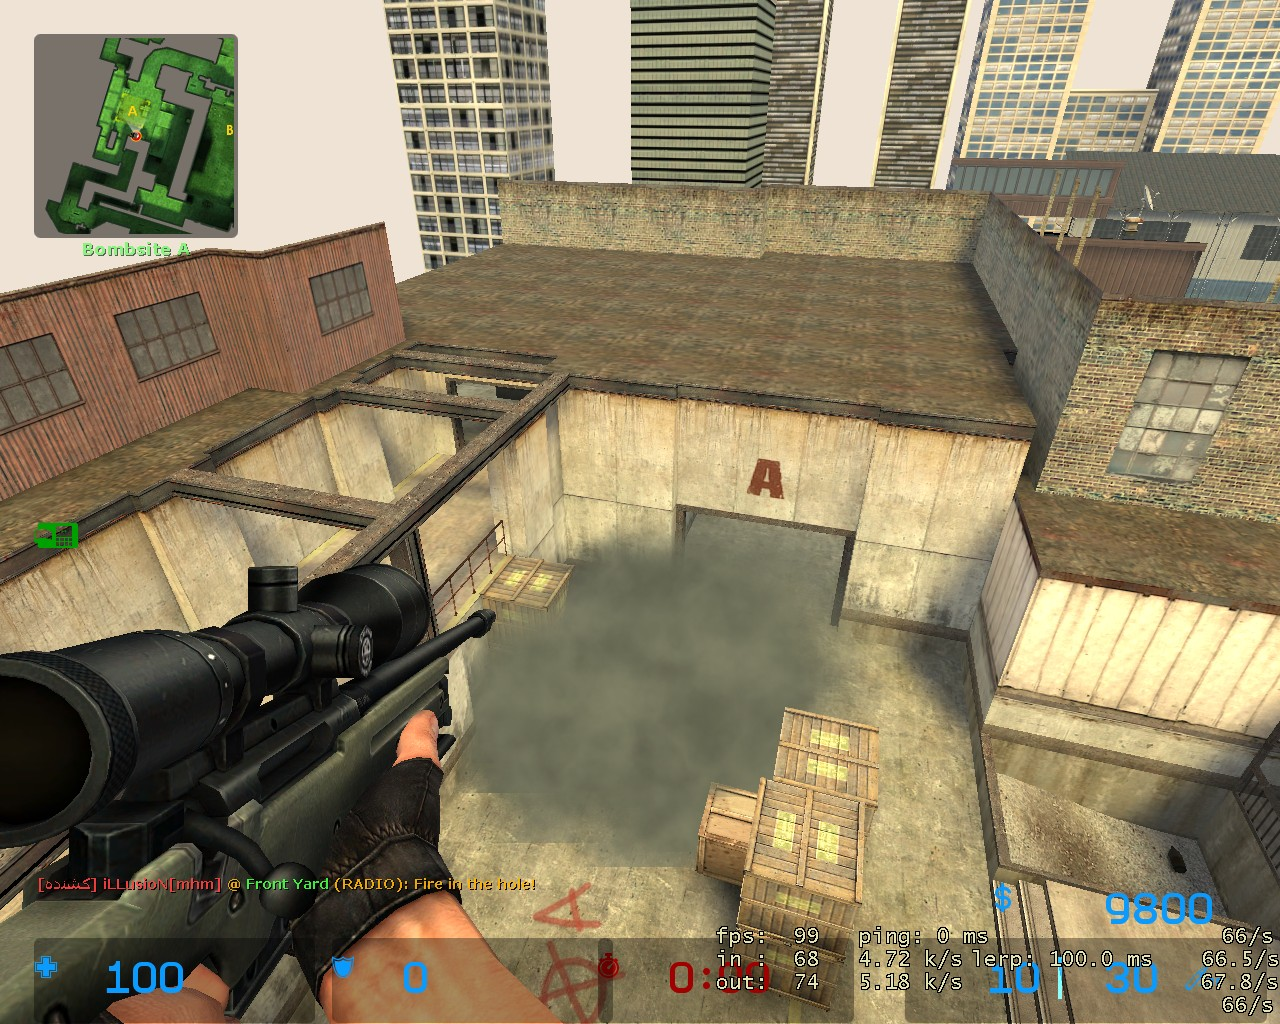 Ian's friend prime-de_season-elbow-smoke-spawn-effect-jpg